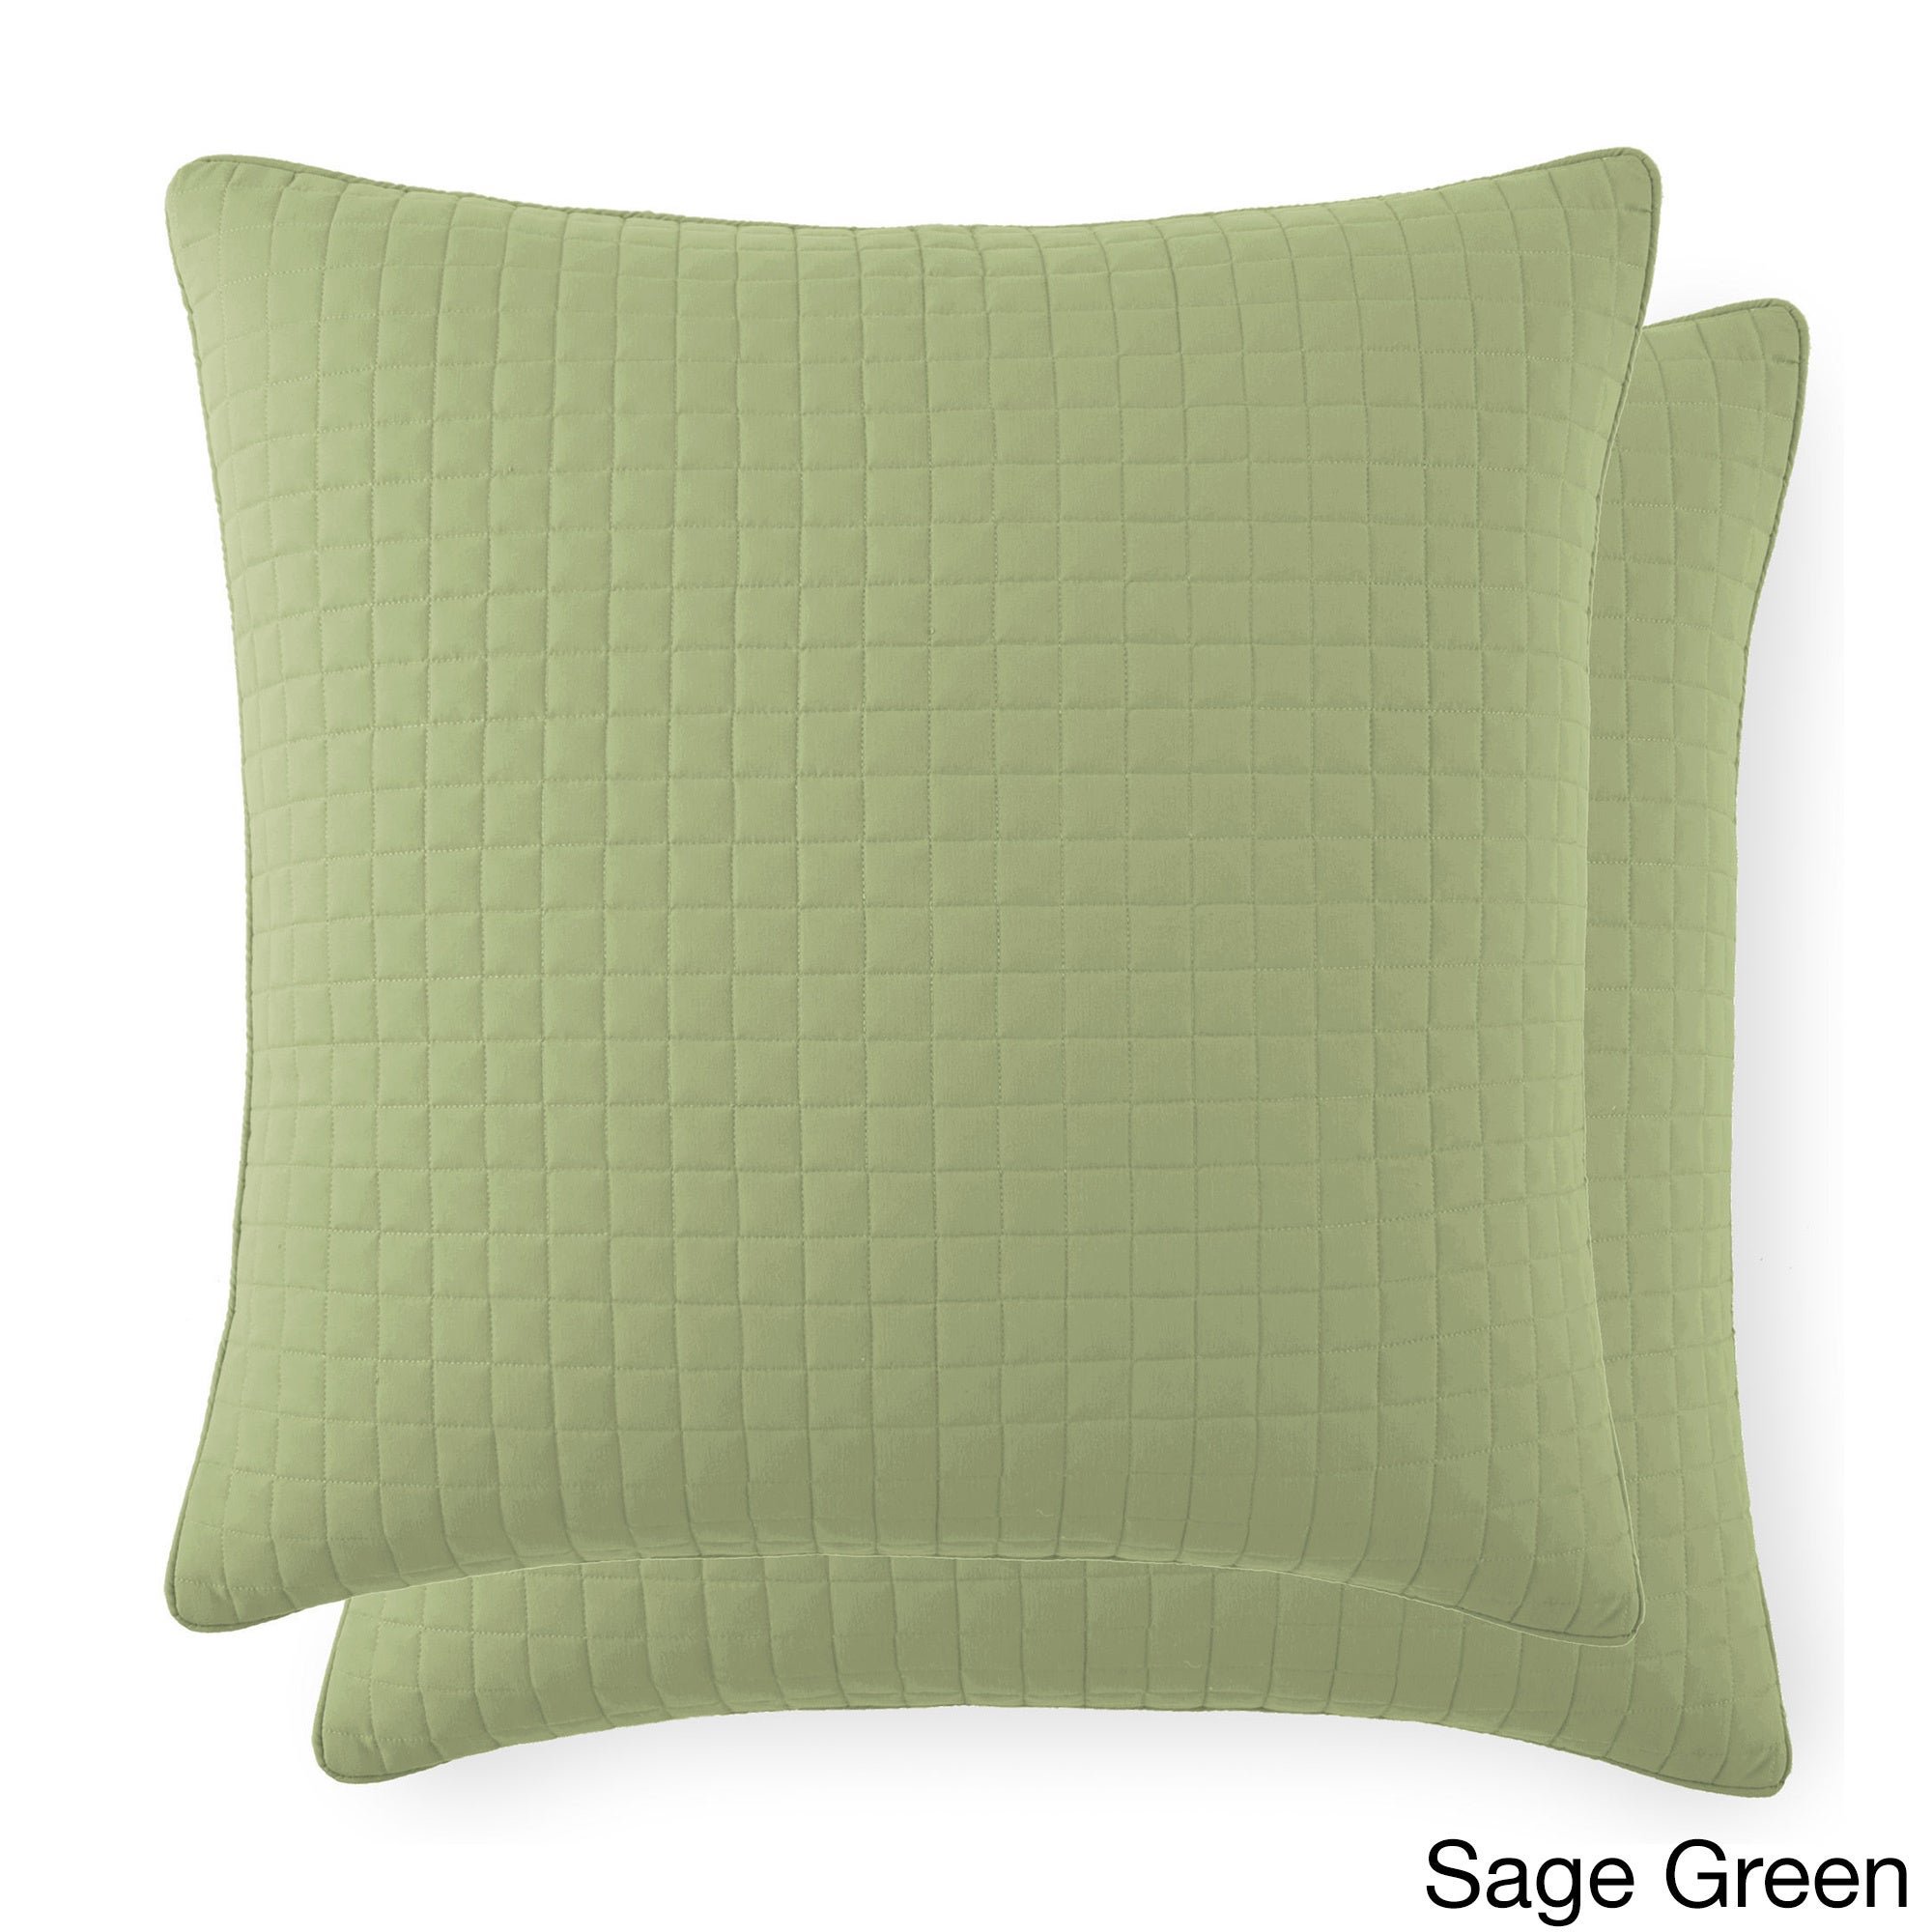 product on over pillow cable garden pillows home throw knit free shipping orders rizzy sage overstock inch